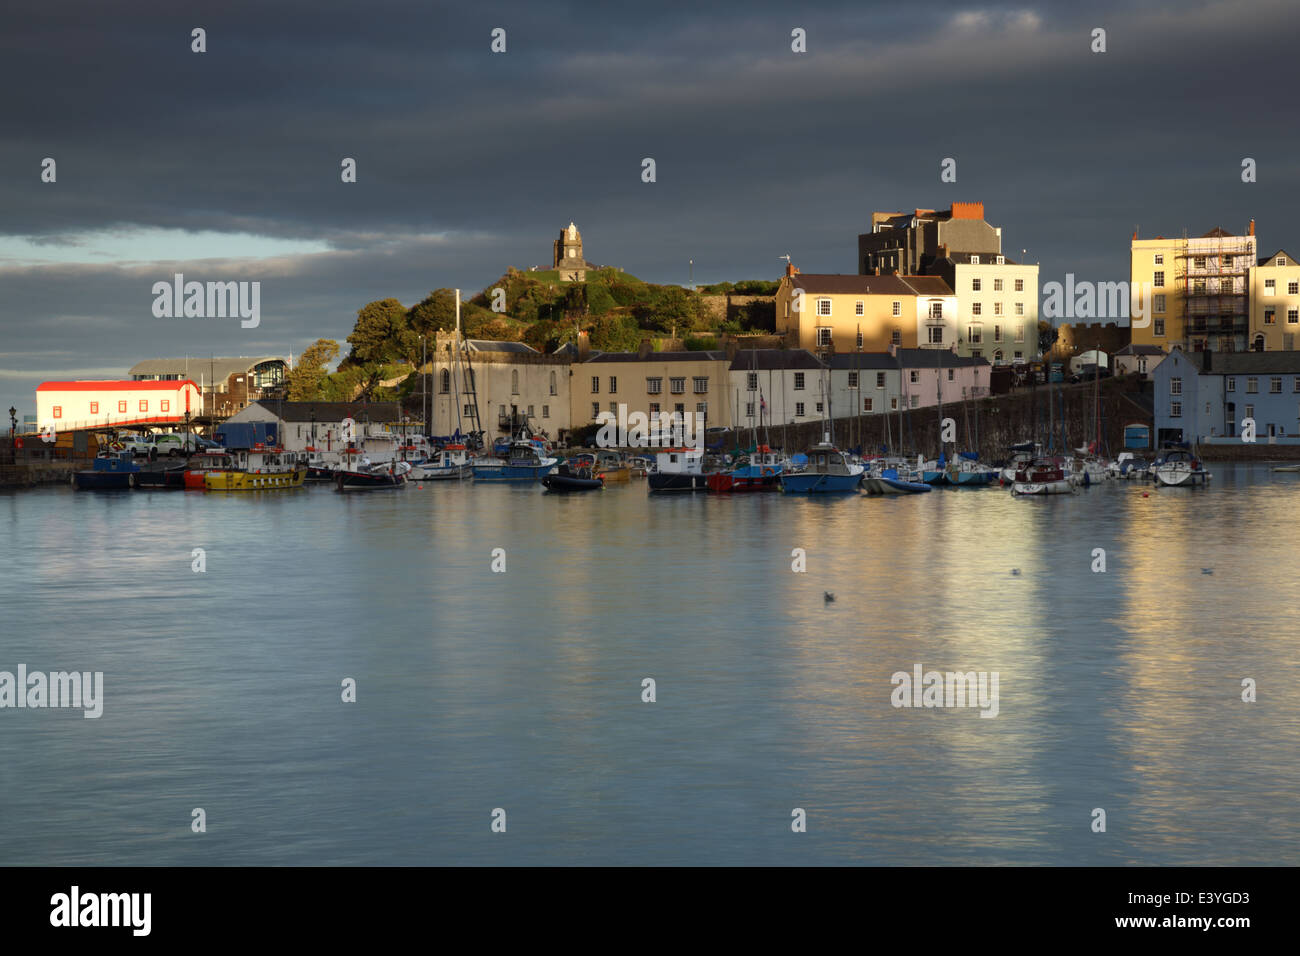 Tenby Harbour at sunset, West Wales, Pembrokeshire, UK. Stock Photo